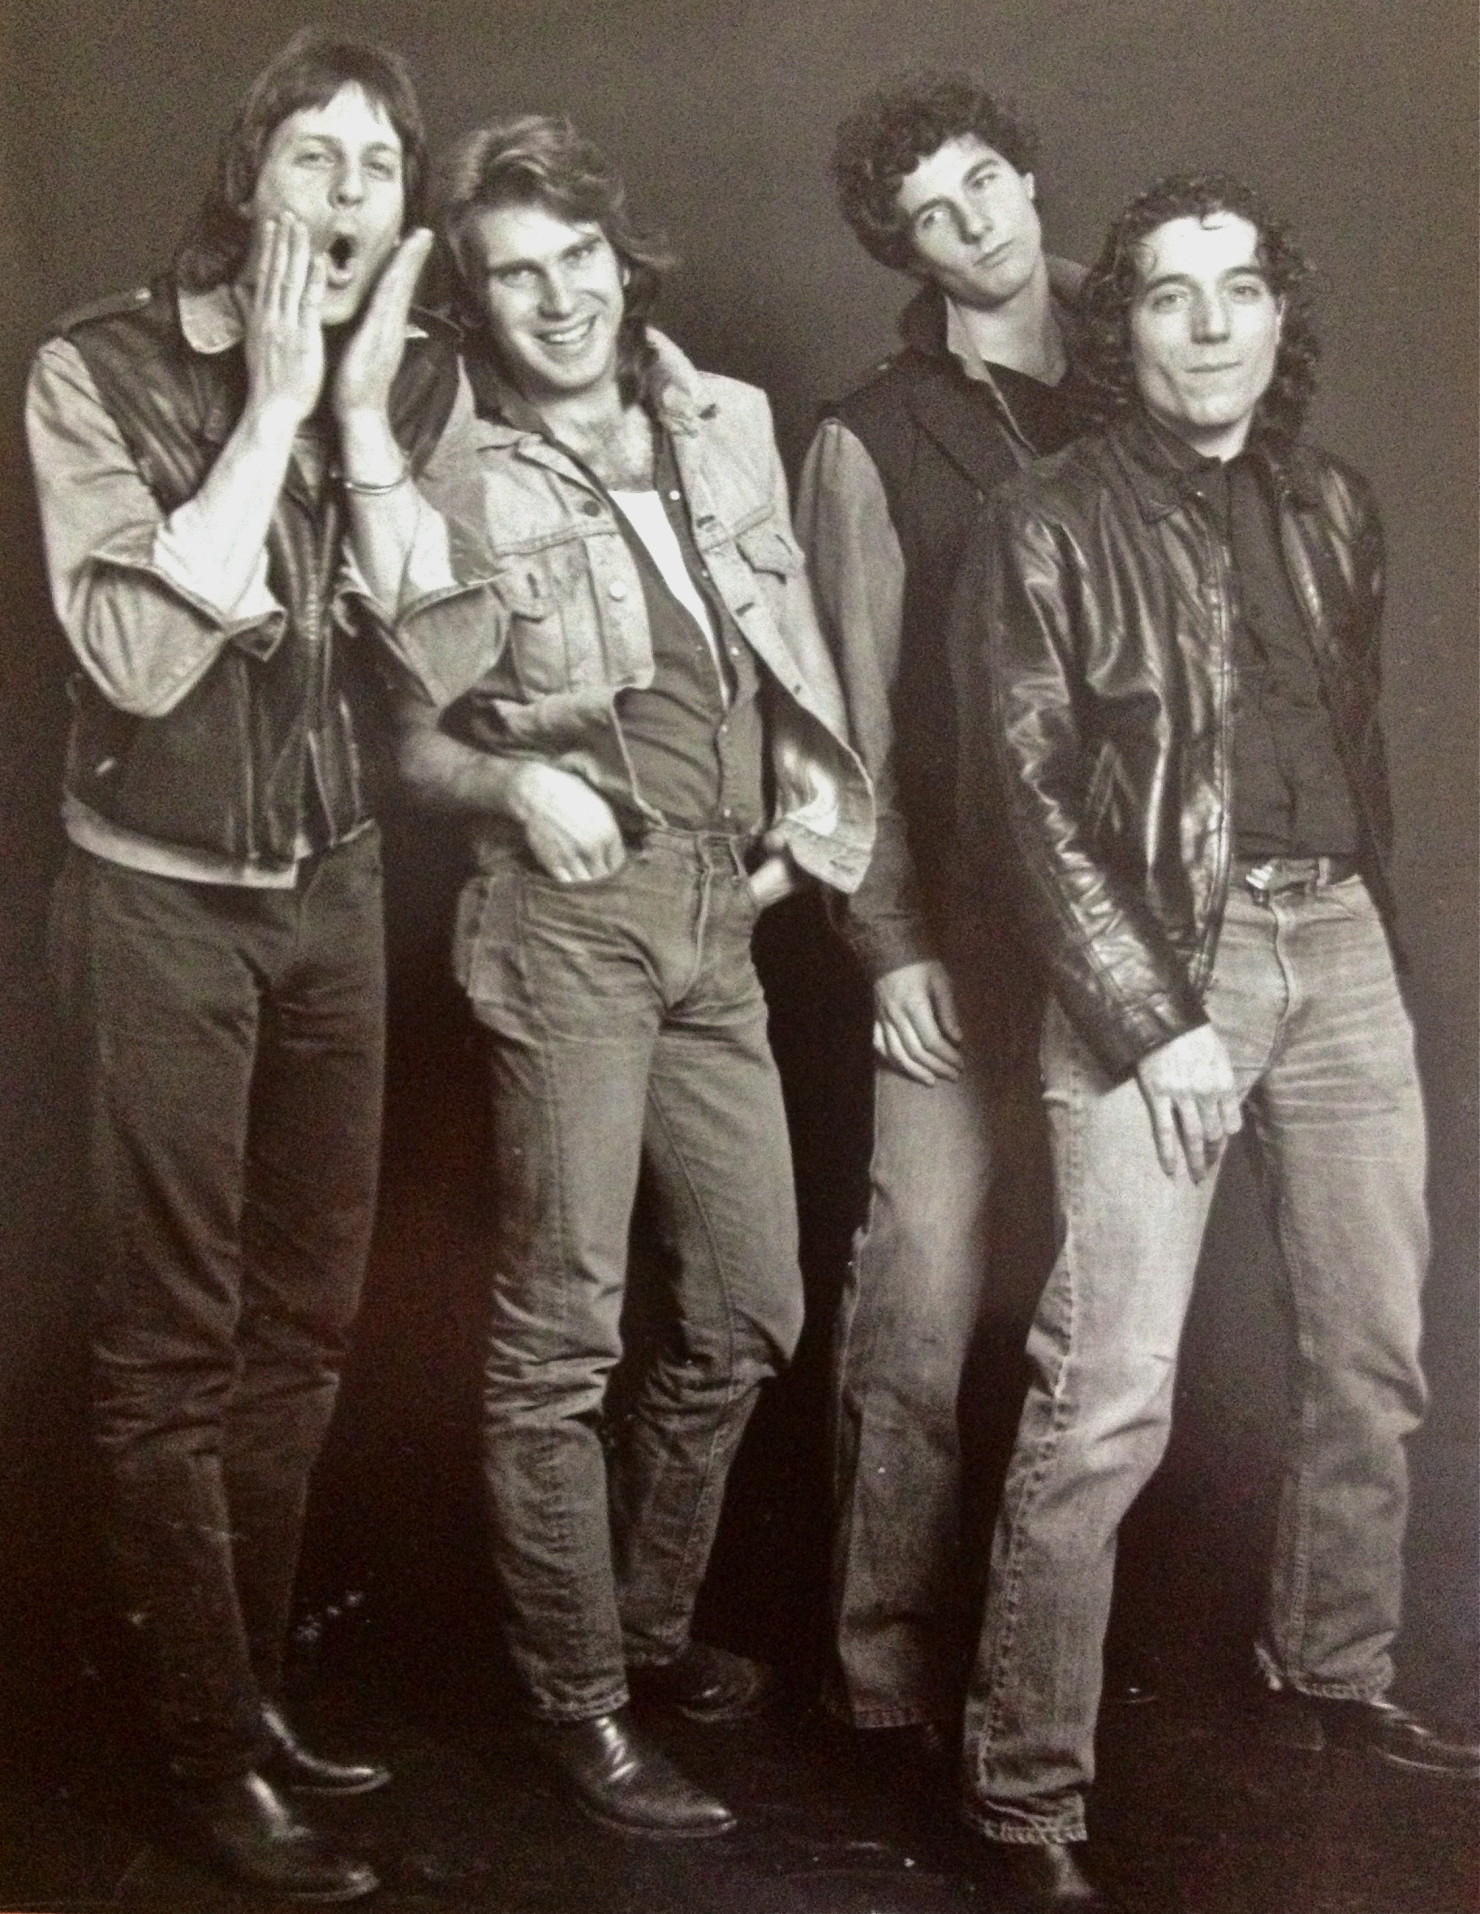 Troy & the Tornados